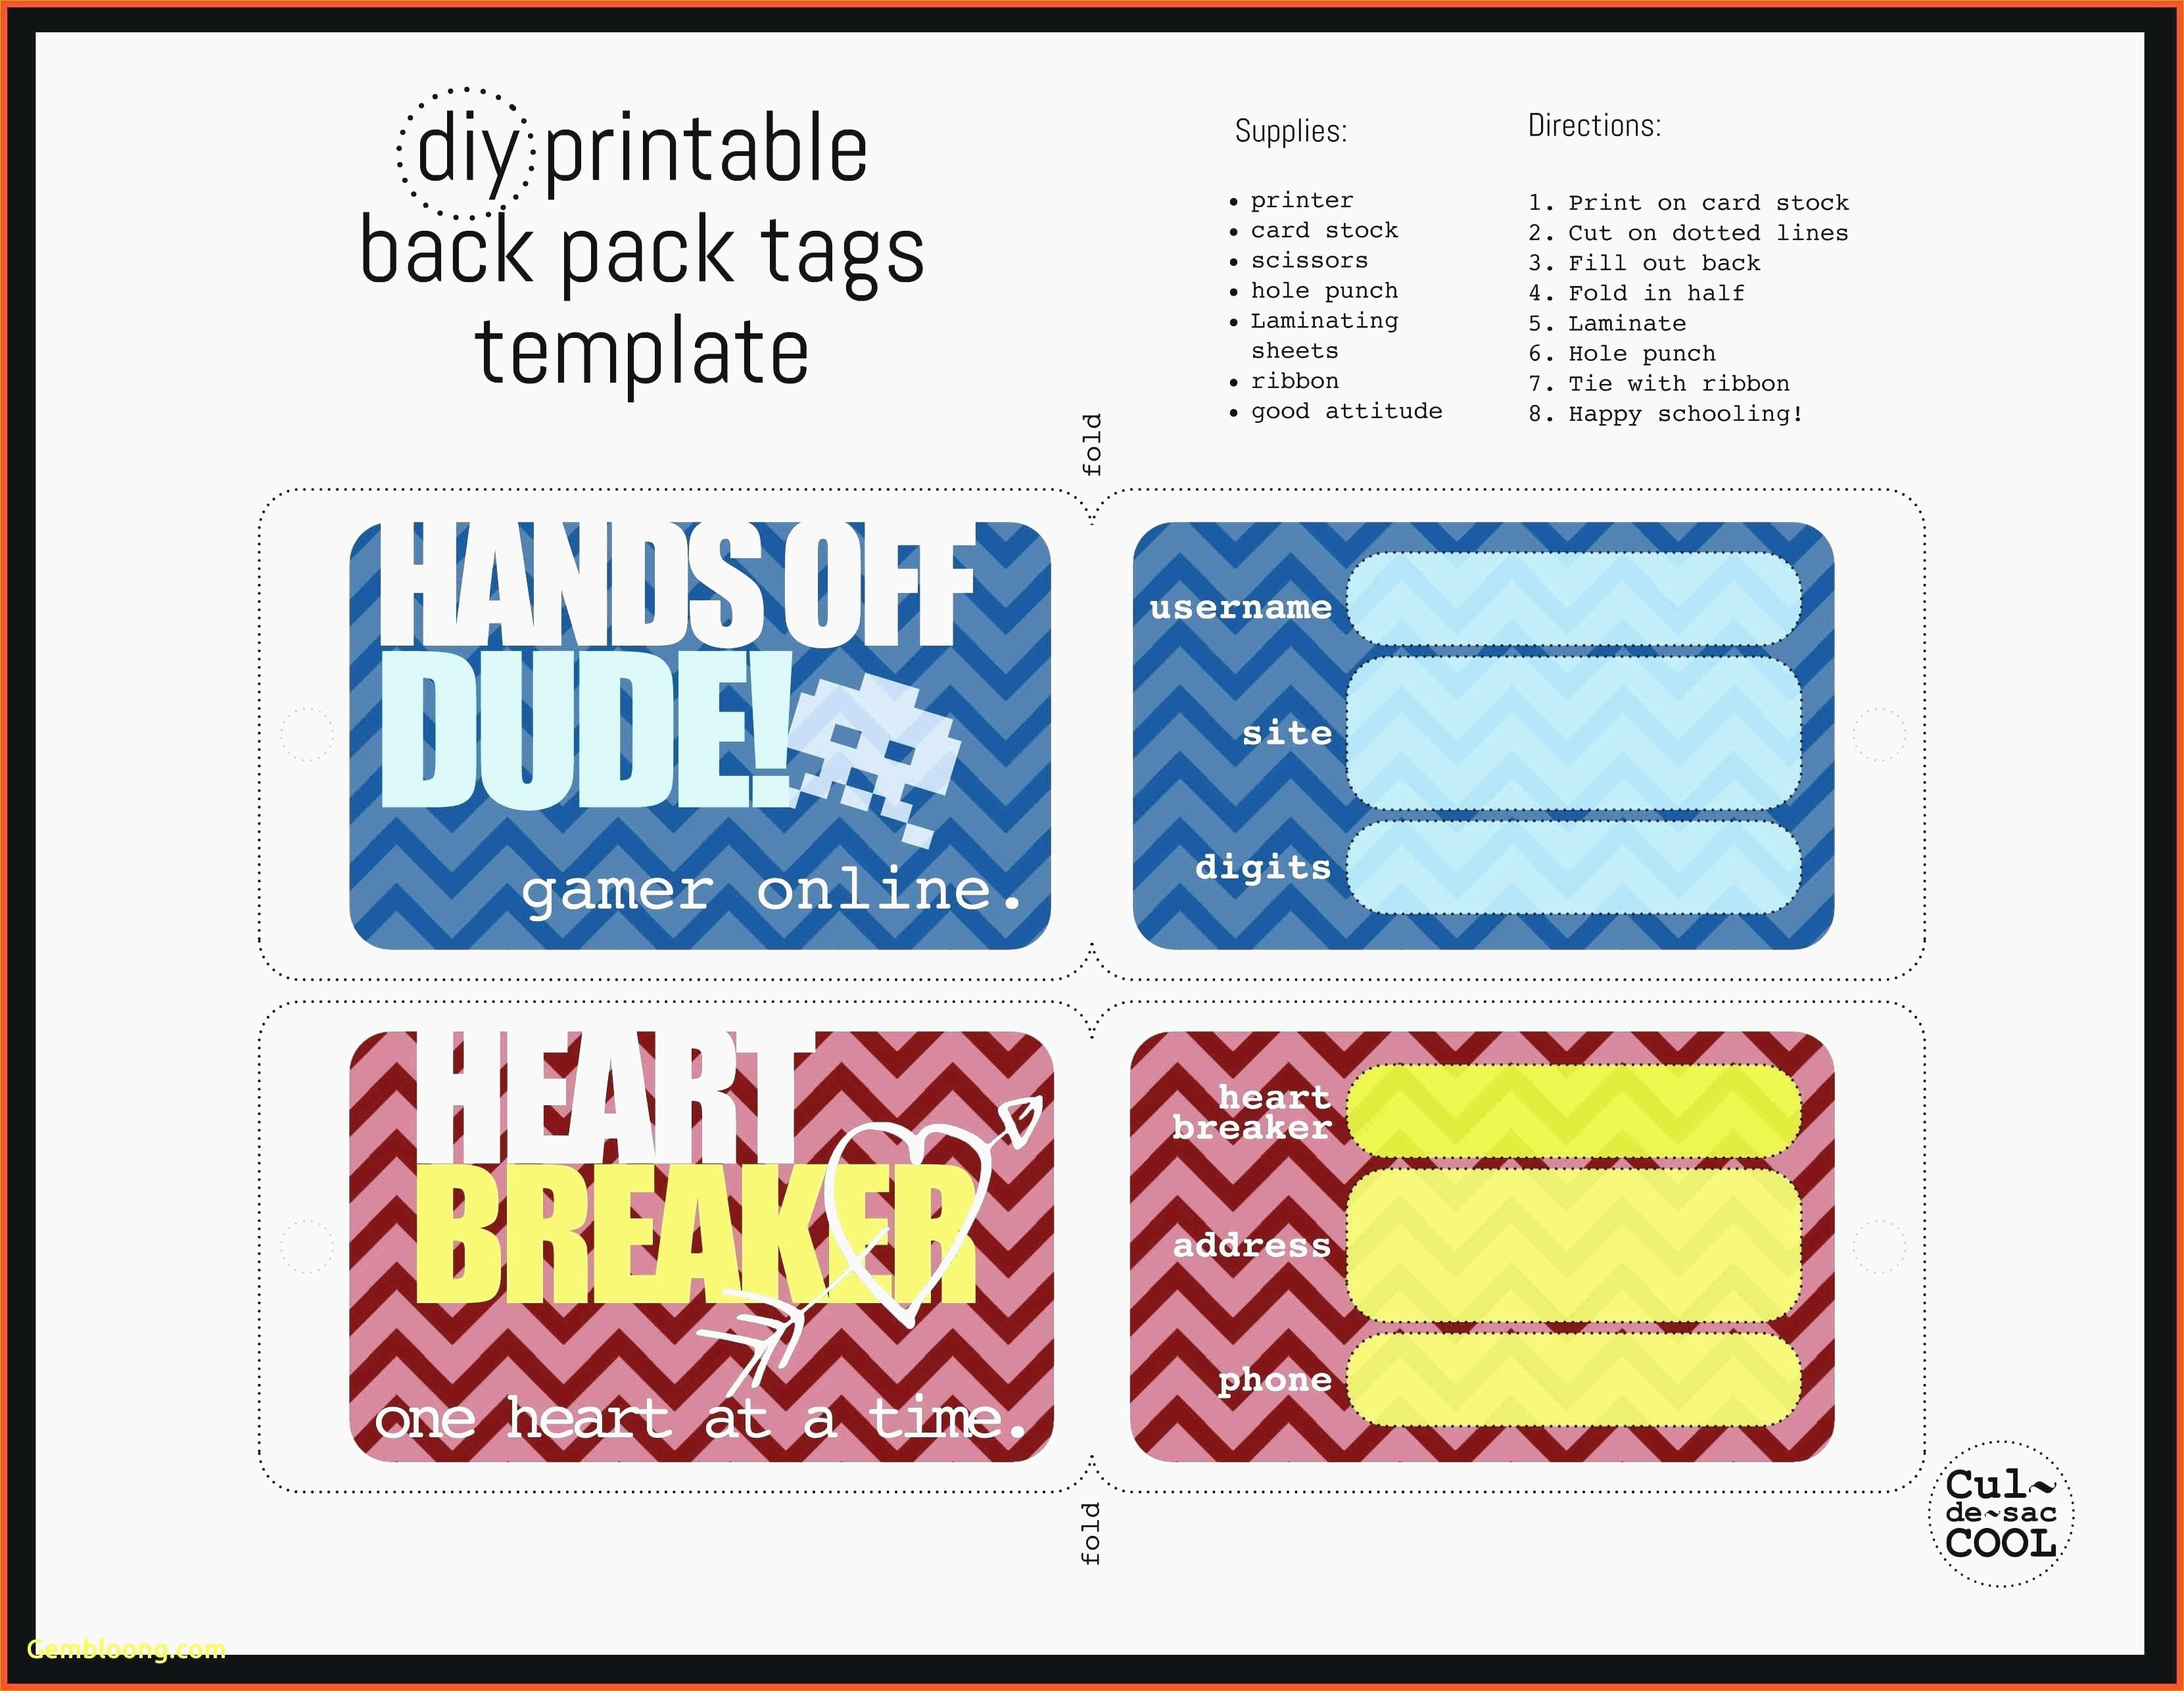 015 Template Ideas Luggage Tag Word Awesome Free Printable Tags - Free Printable Luggage Tags